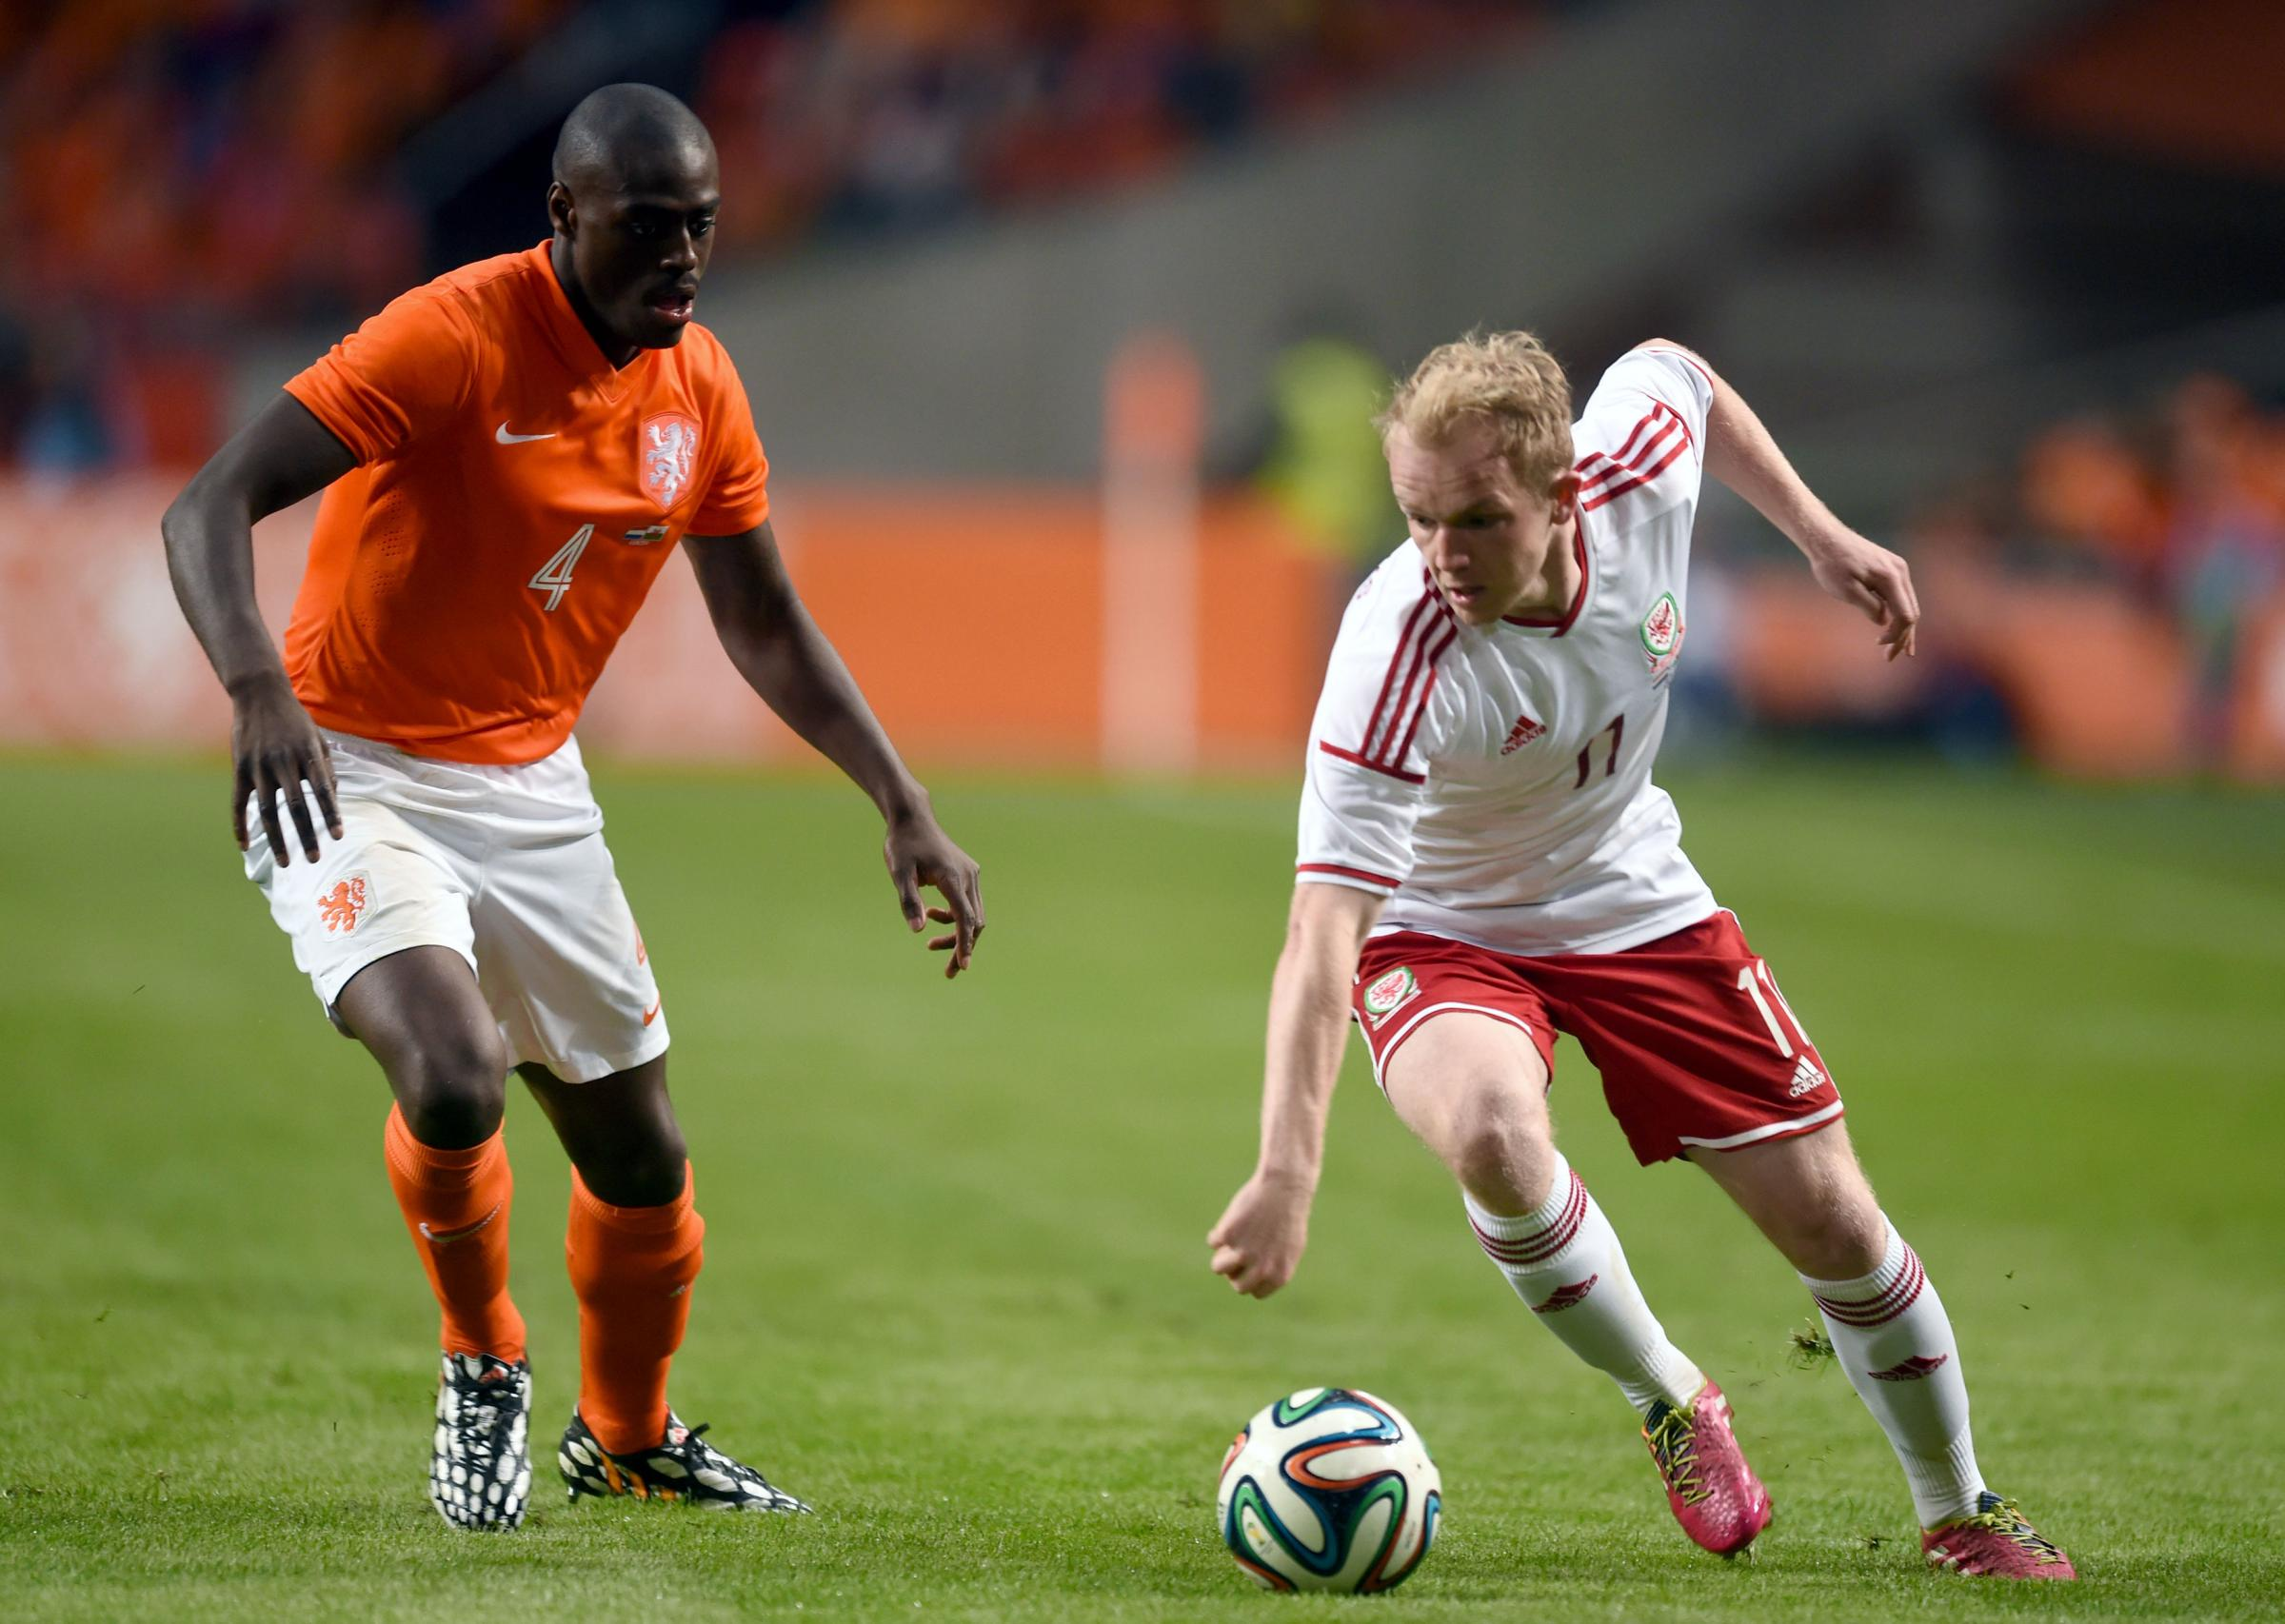 Netherlands' Bruno Martins Indi (left) and Wales' Jonathan Williams battle for the ball during the Friendly at the Amsterdam Arena, Netherlands. PRESS ASSOCIATION Photo. Picture date: Wednesday June 4, 2014. See PA story SOCCER Wales. Photo credit